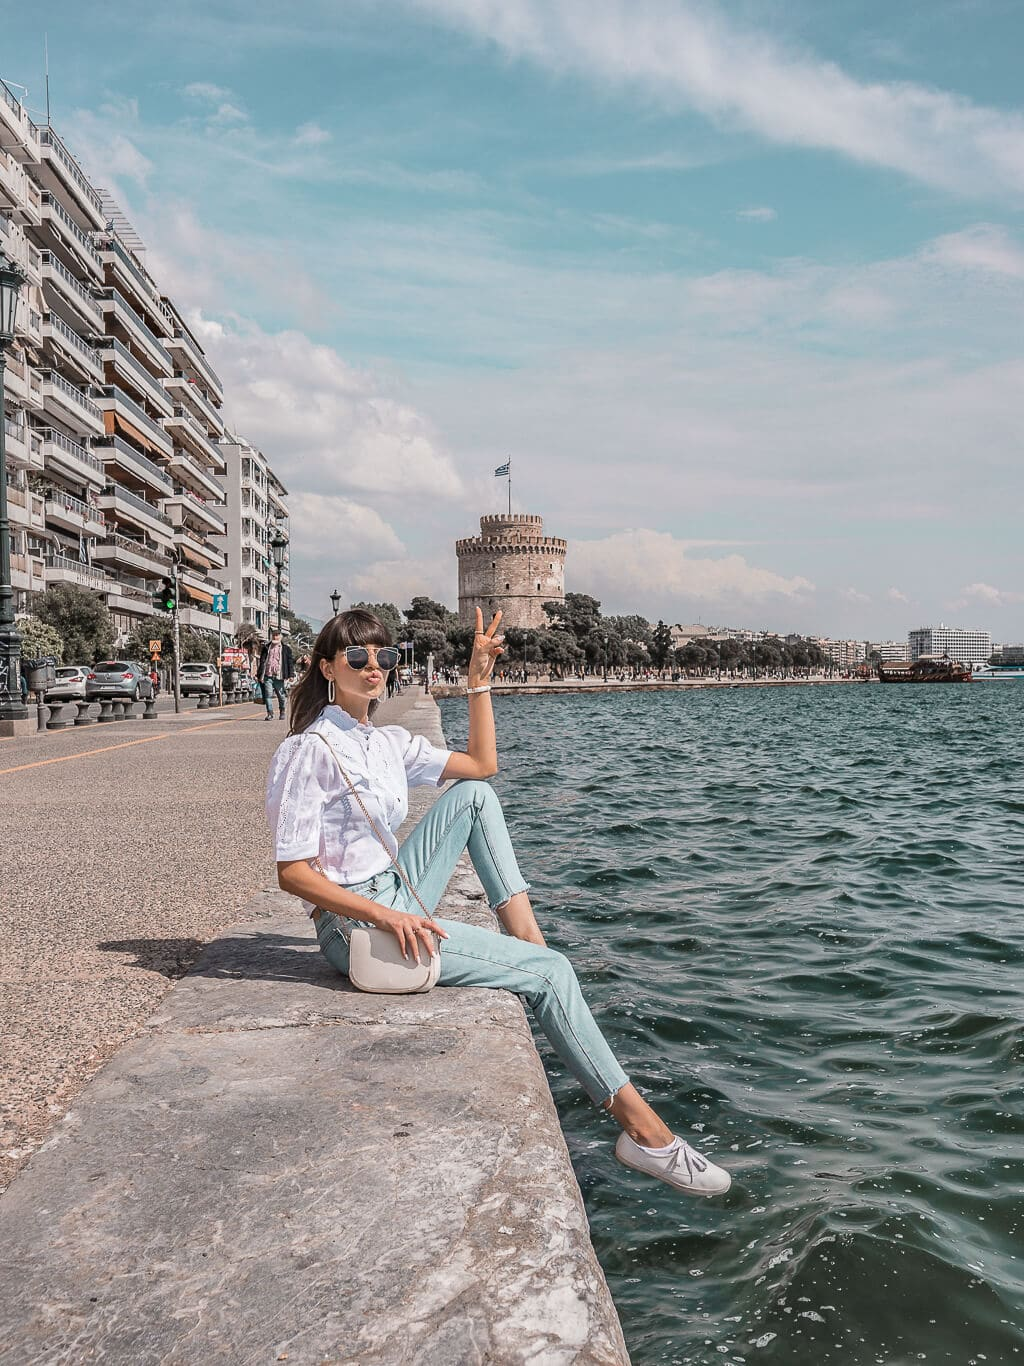 Instagram Outfits Round Up: Vacationing In North Greece